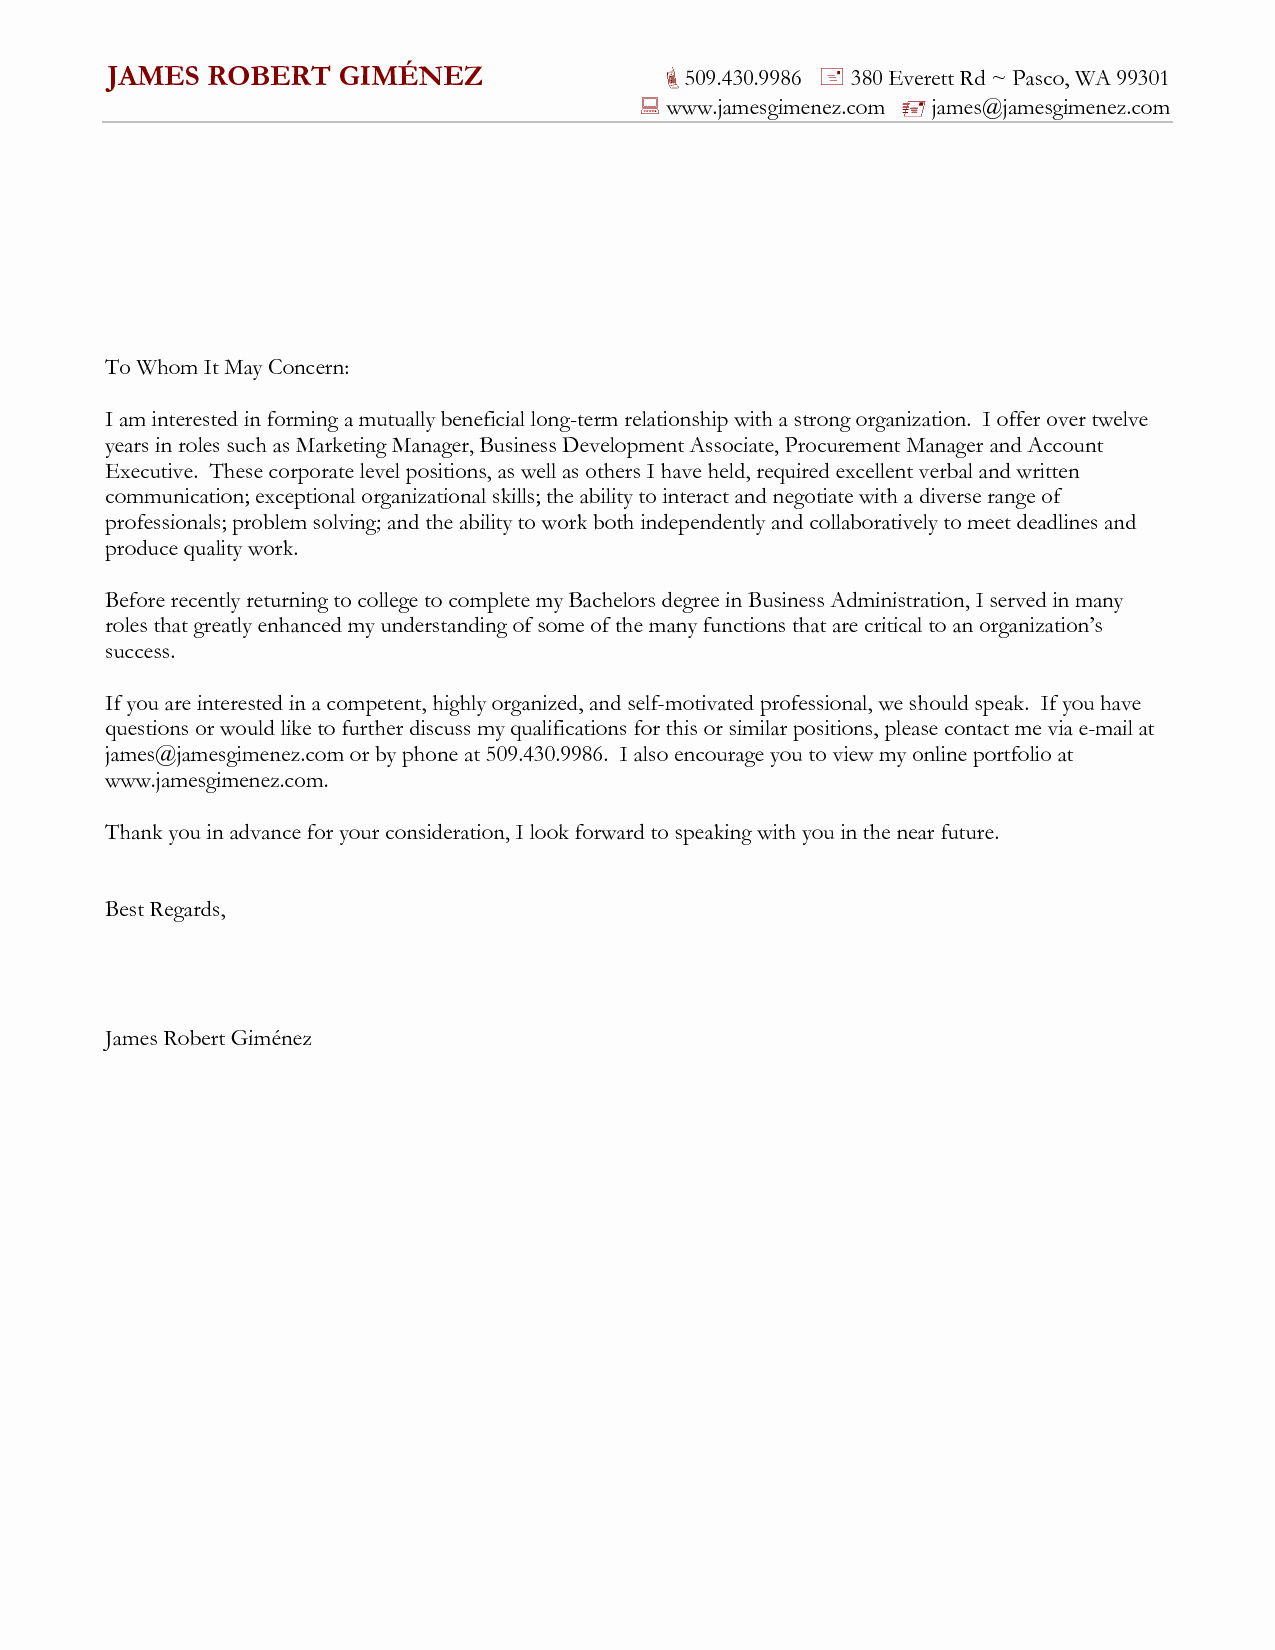 General Cover Letter Sample Beautiful Cover Letter for General Application Cover Letter